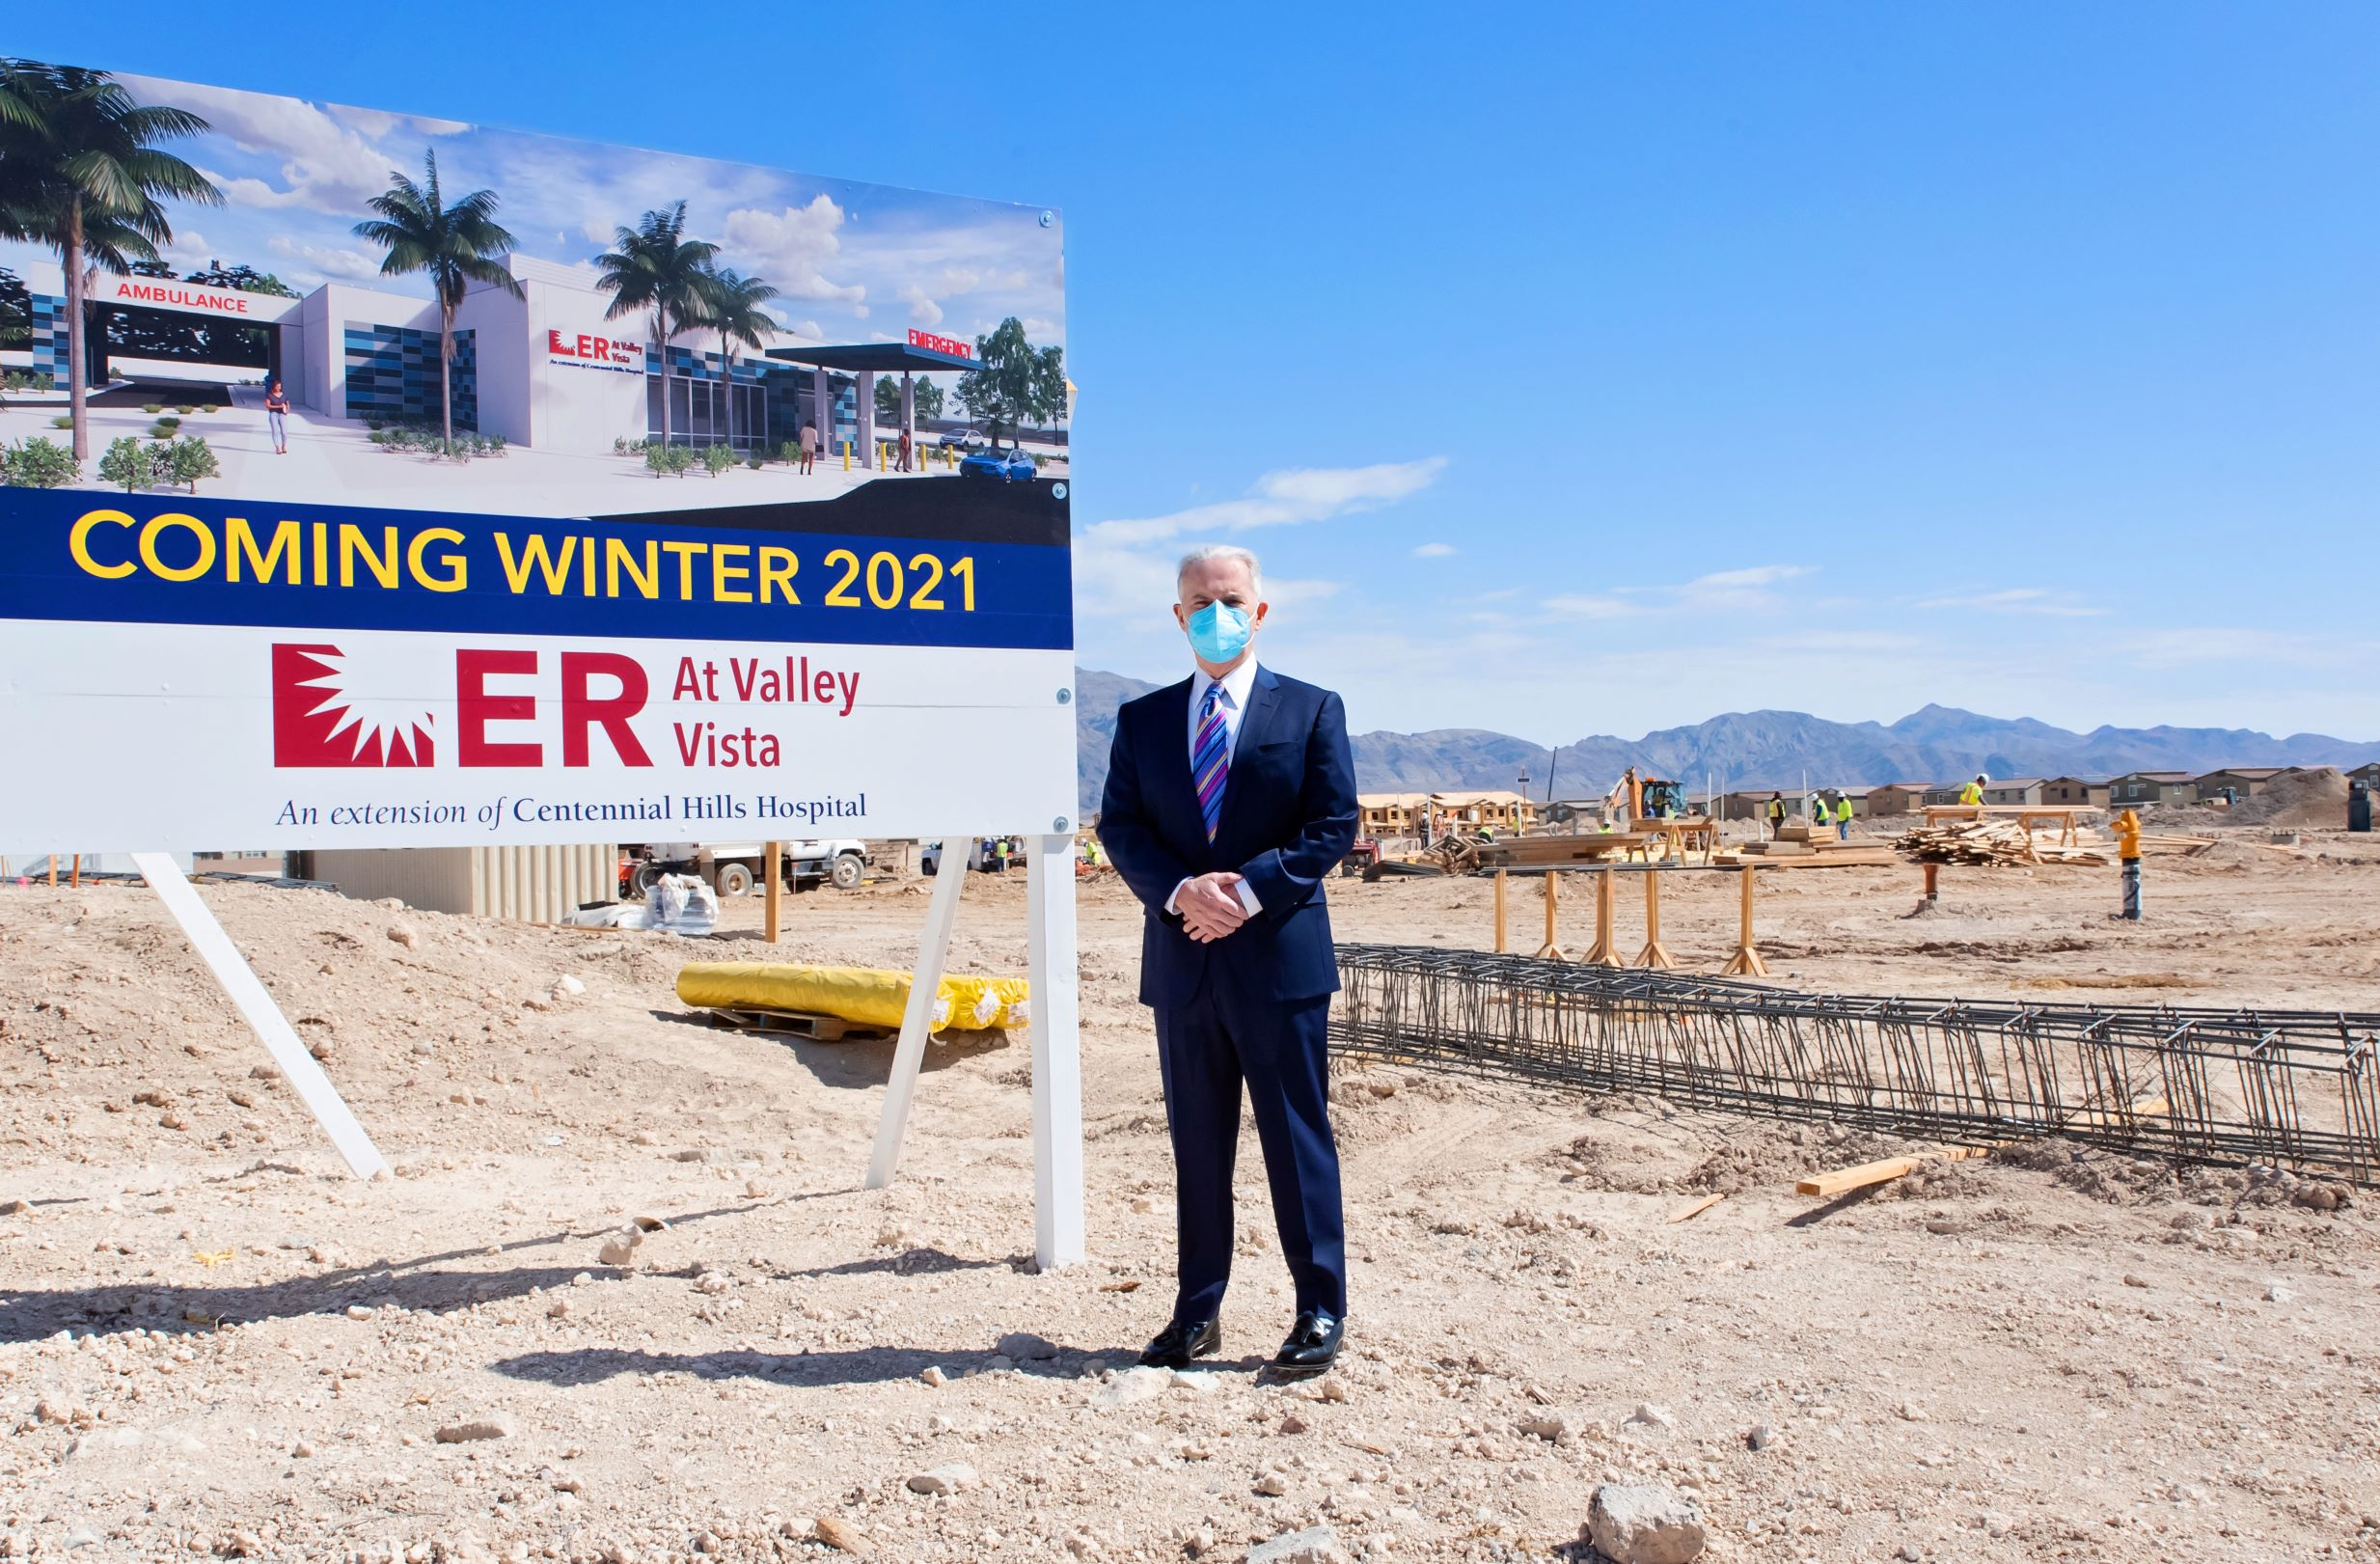 Dr. Cercone standing at the site in North Las Vegas where the new freestanding ER will be located.